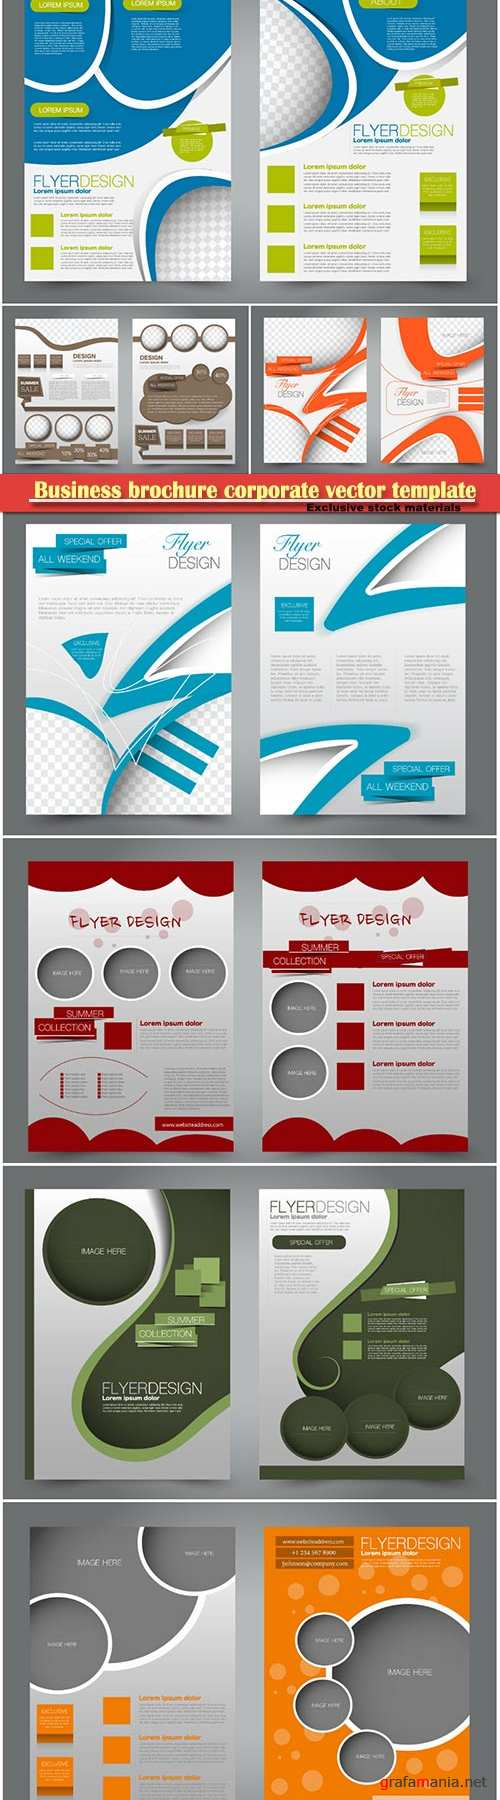 Business brochure corporate vector template, magazine flyer mockup # 28